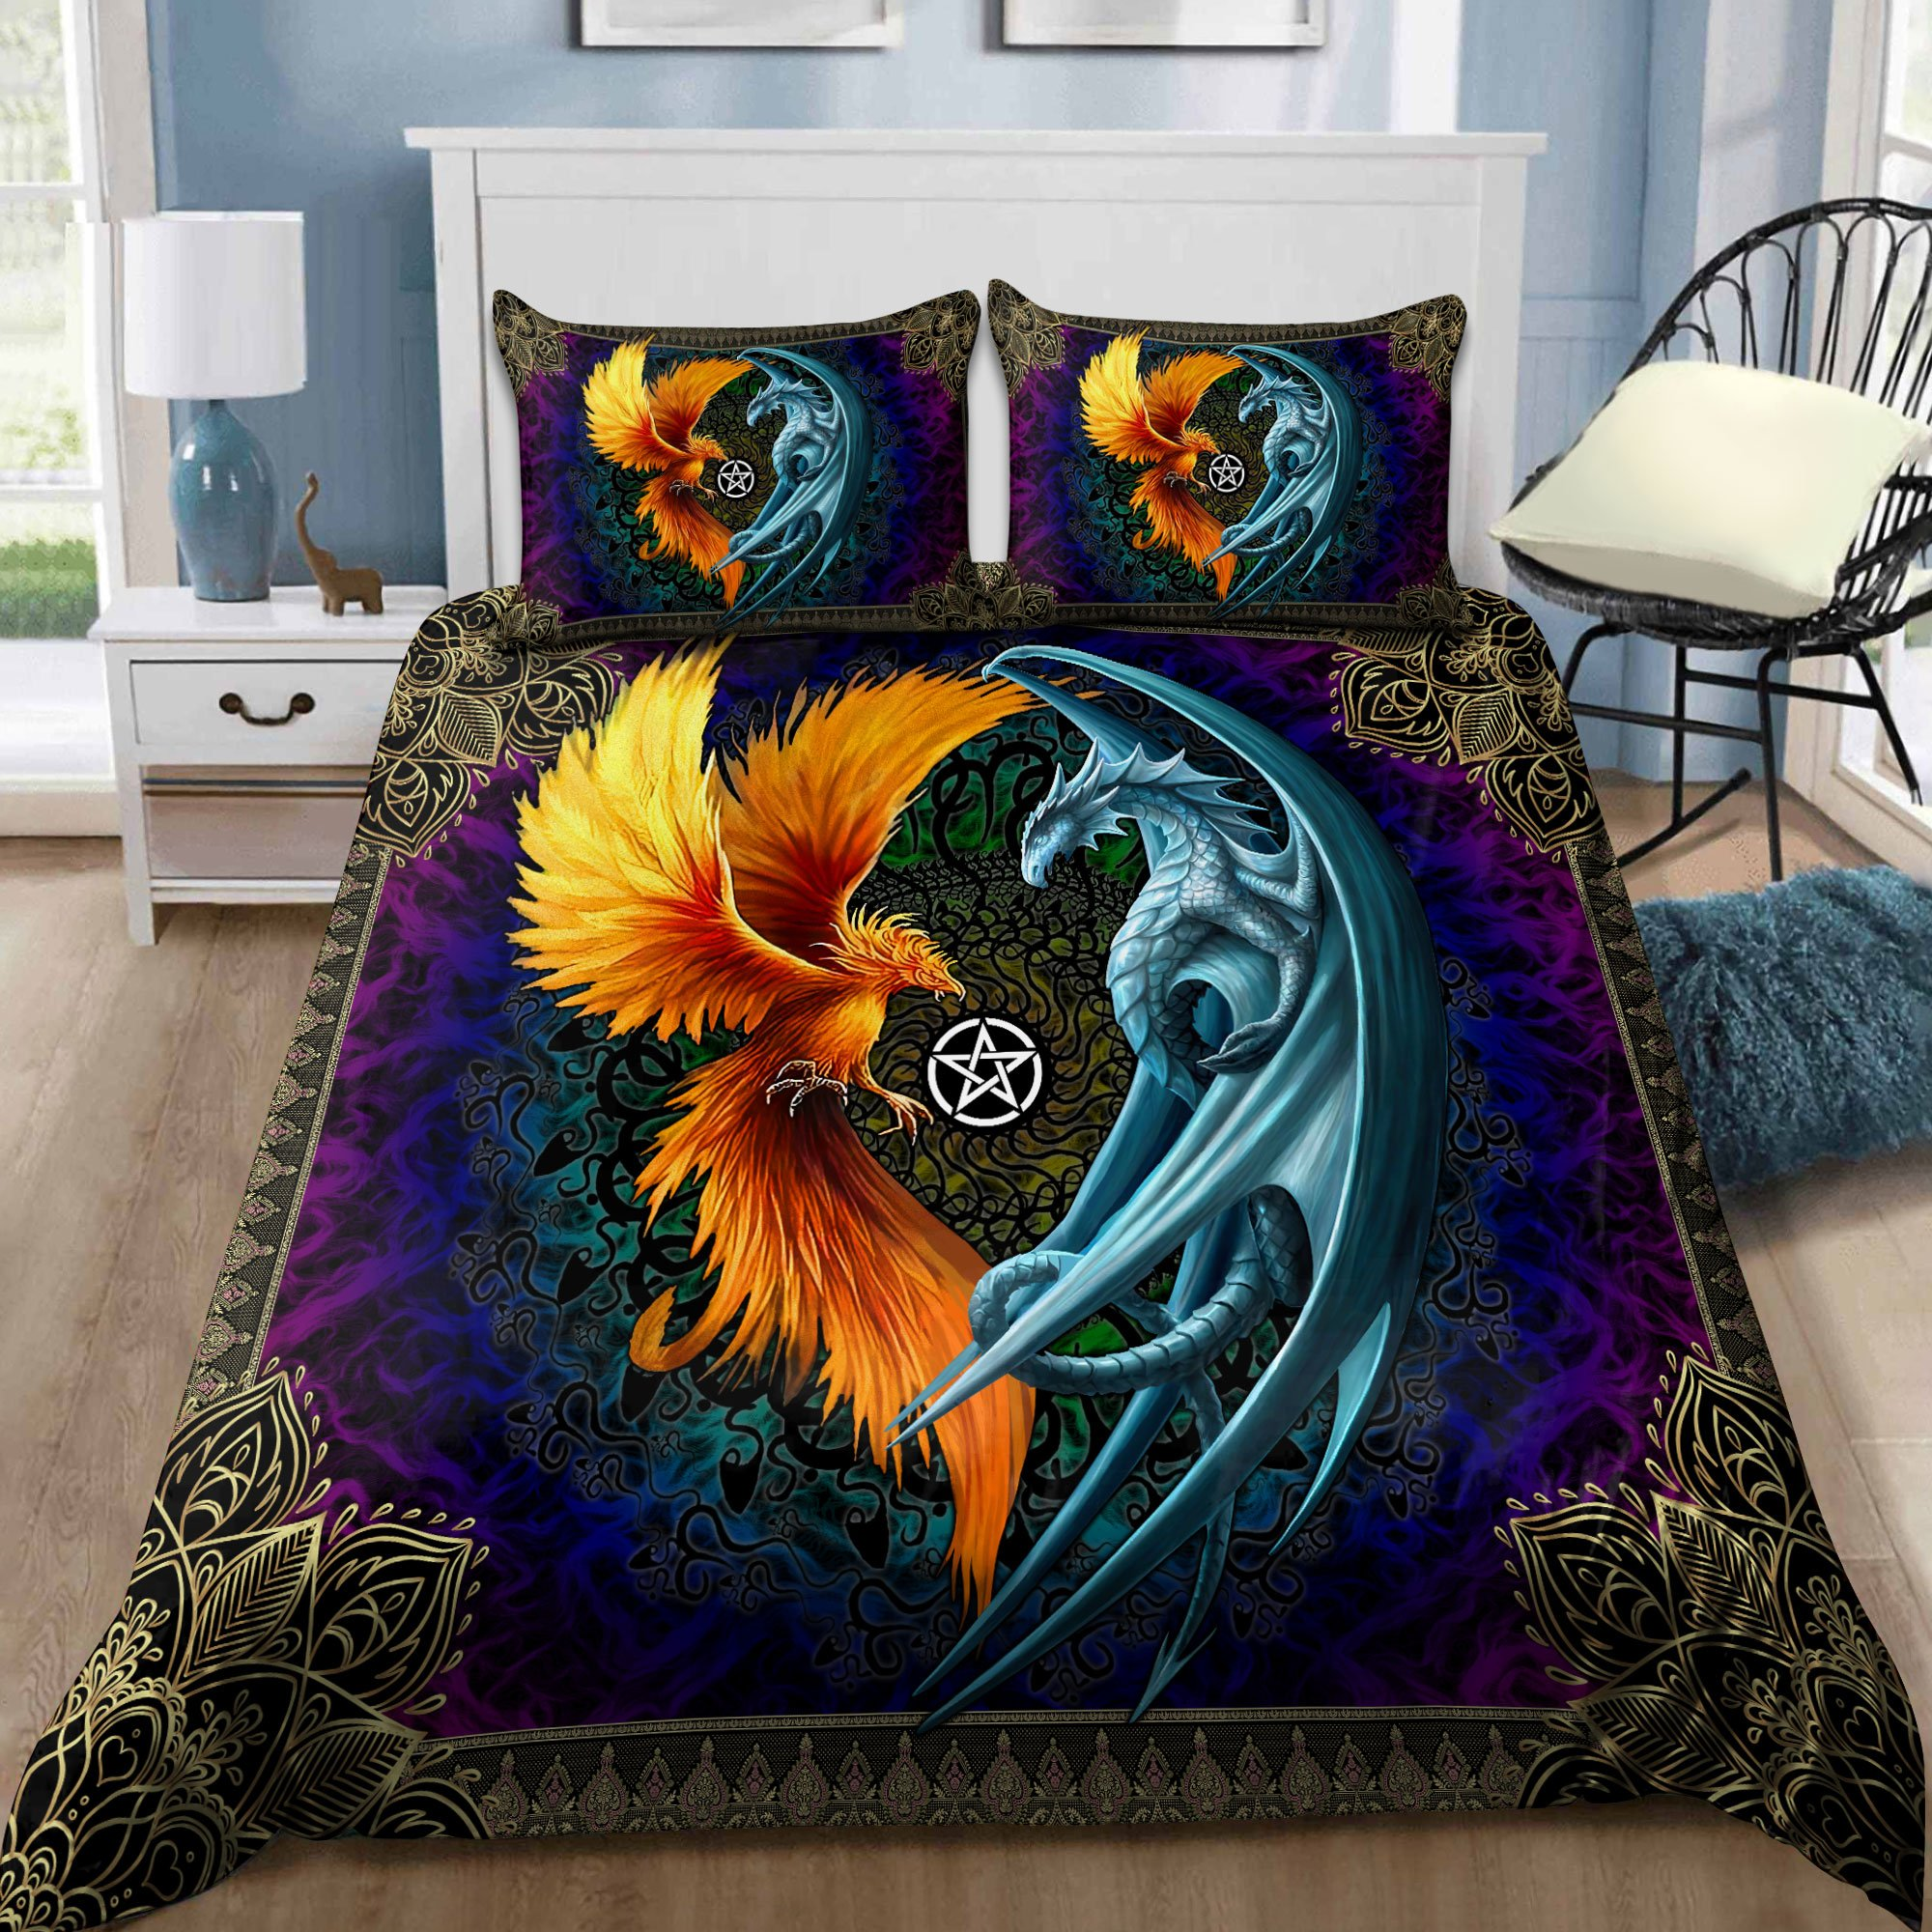 Dragon And Phoenix 3D All Over Printed Bedding Set